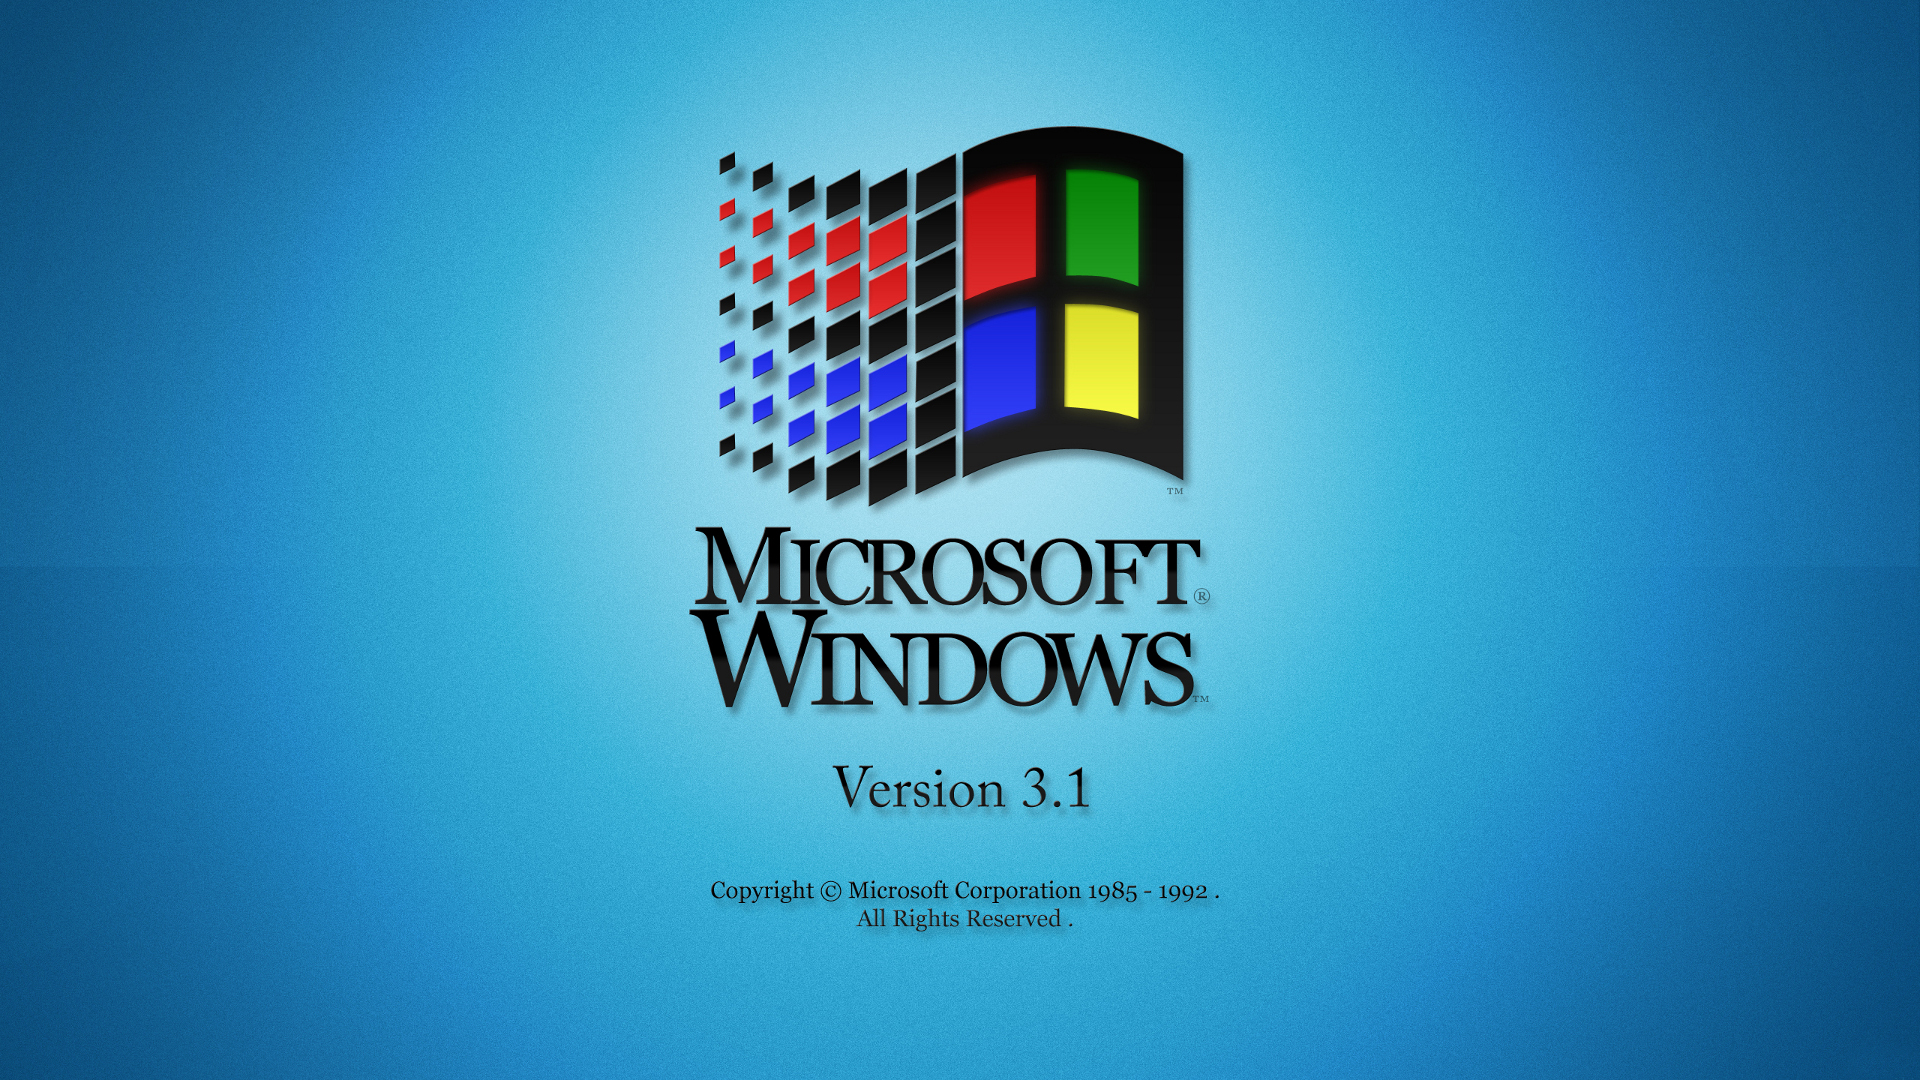 Windows 3.1 Wallpaper